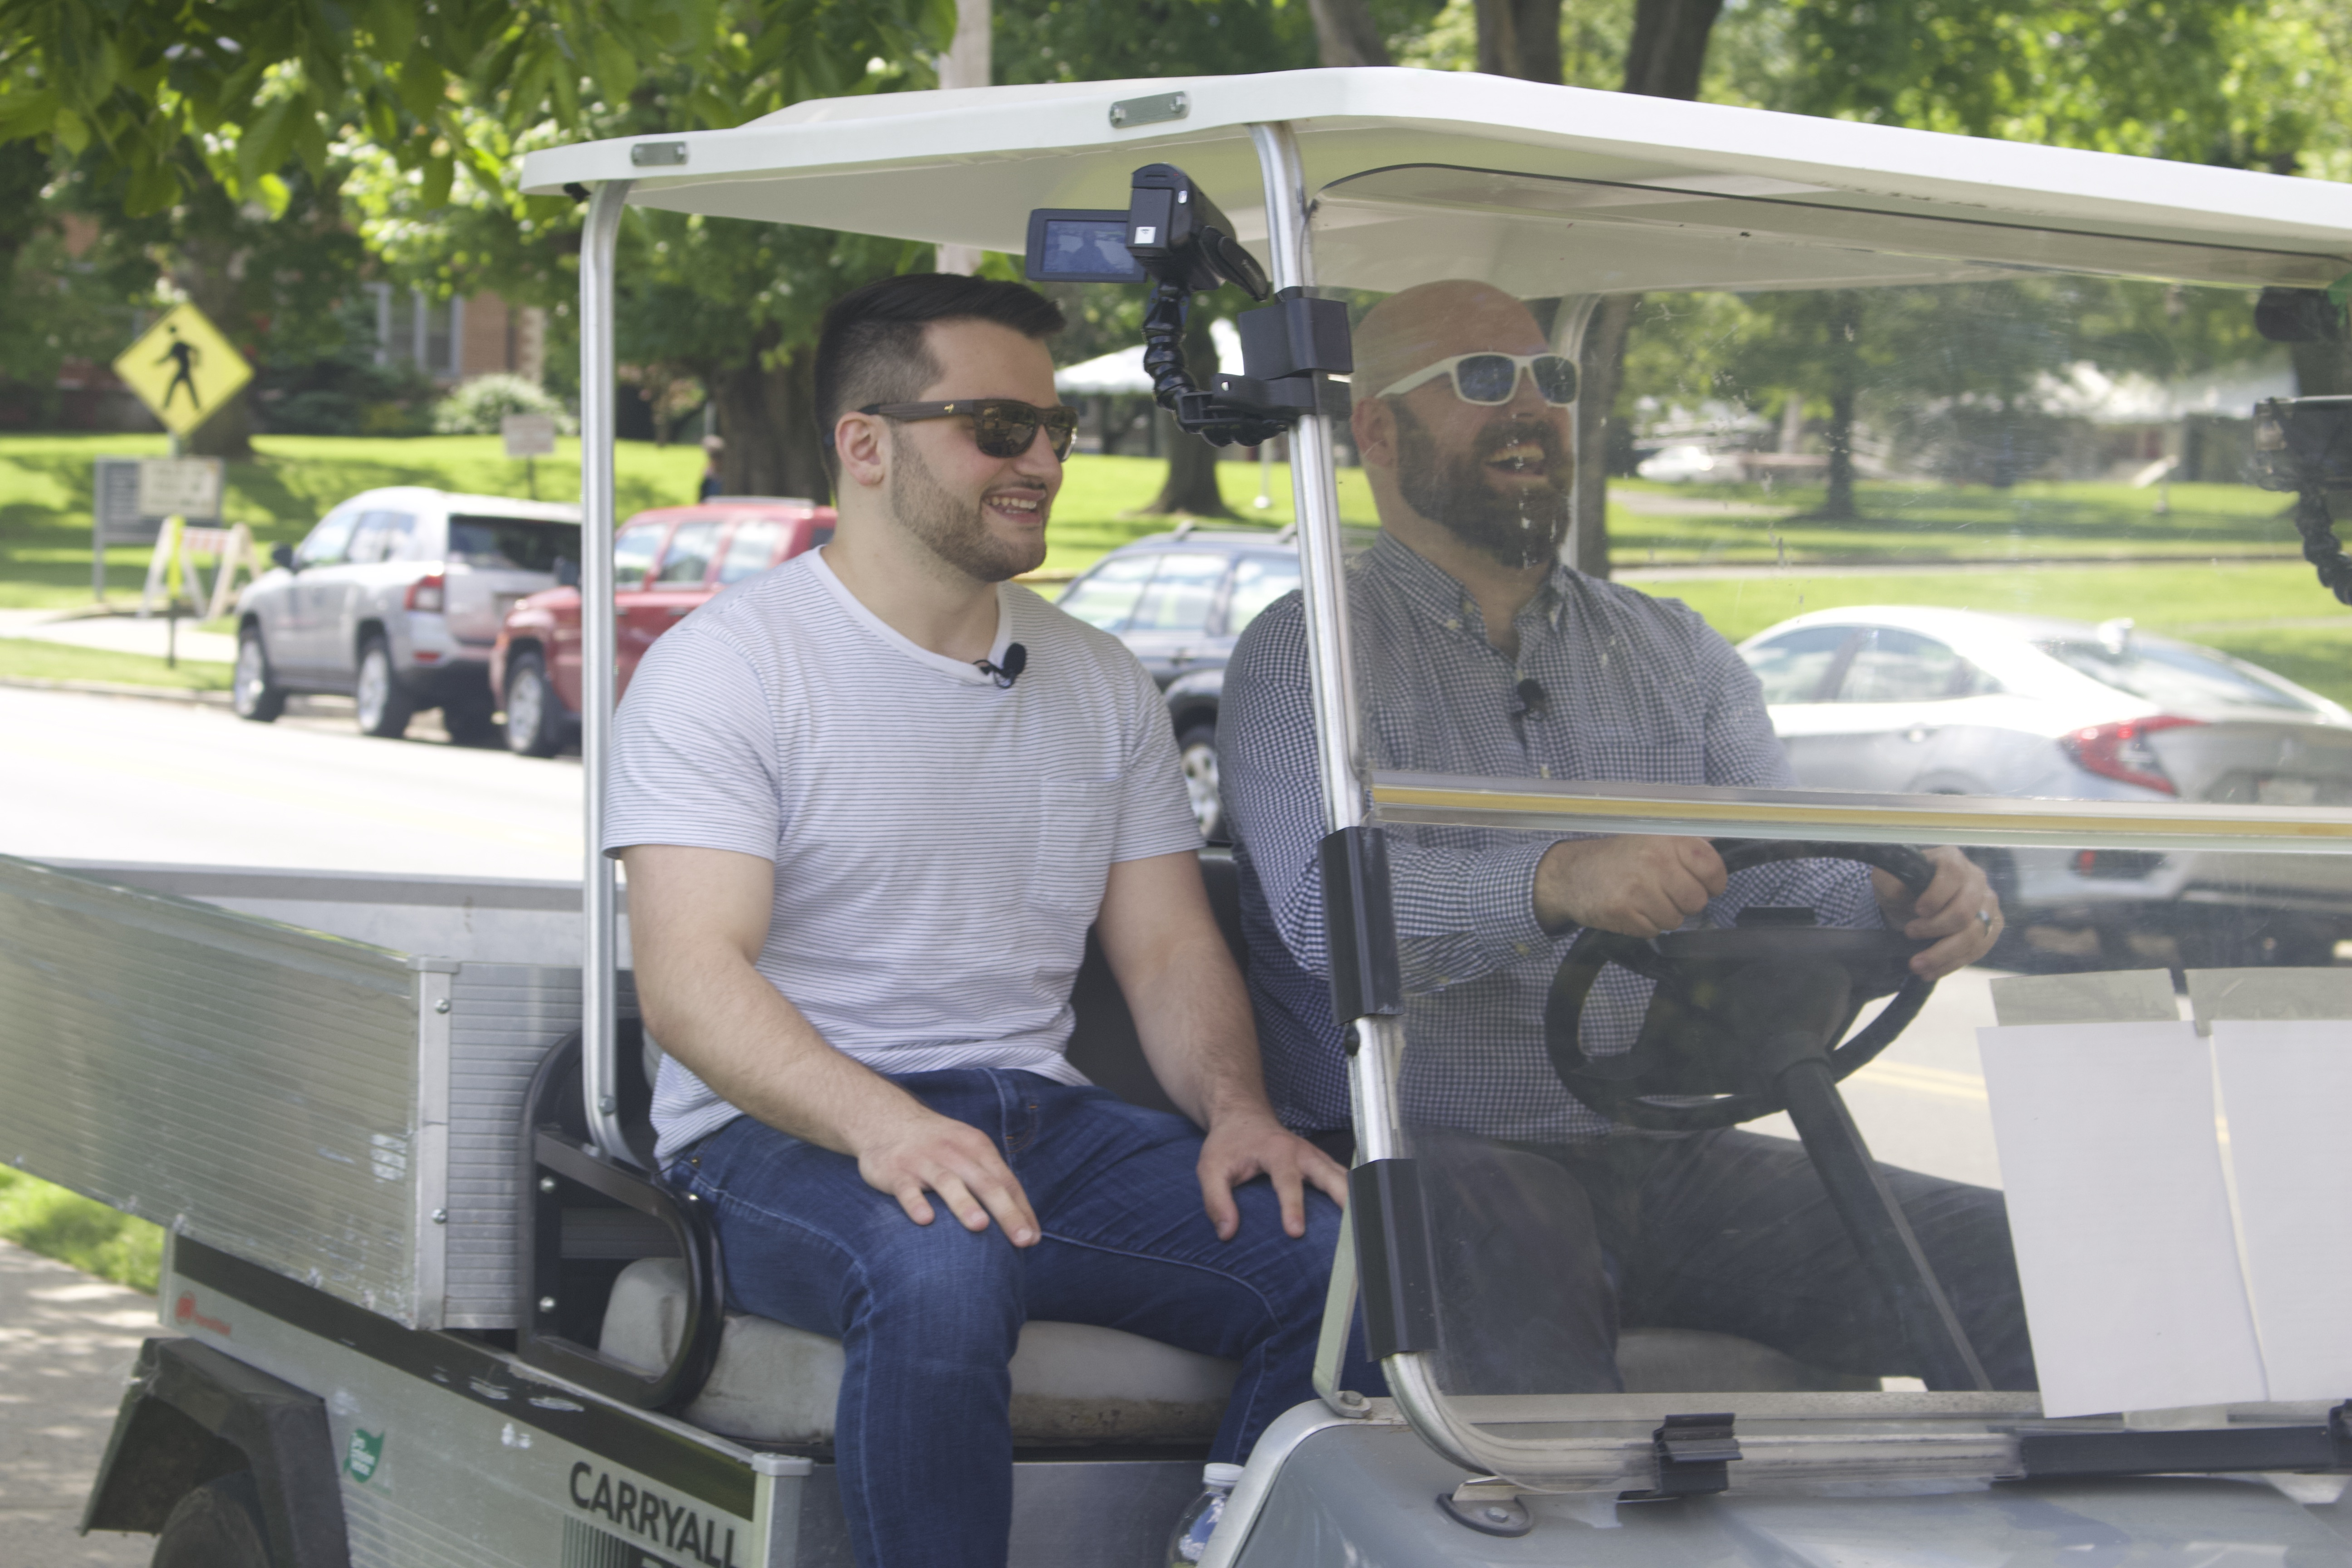 Image for Anthony and Tony talk and travel around campus in a golf cart in this image from the filming of episode 2.